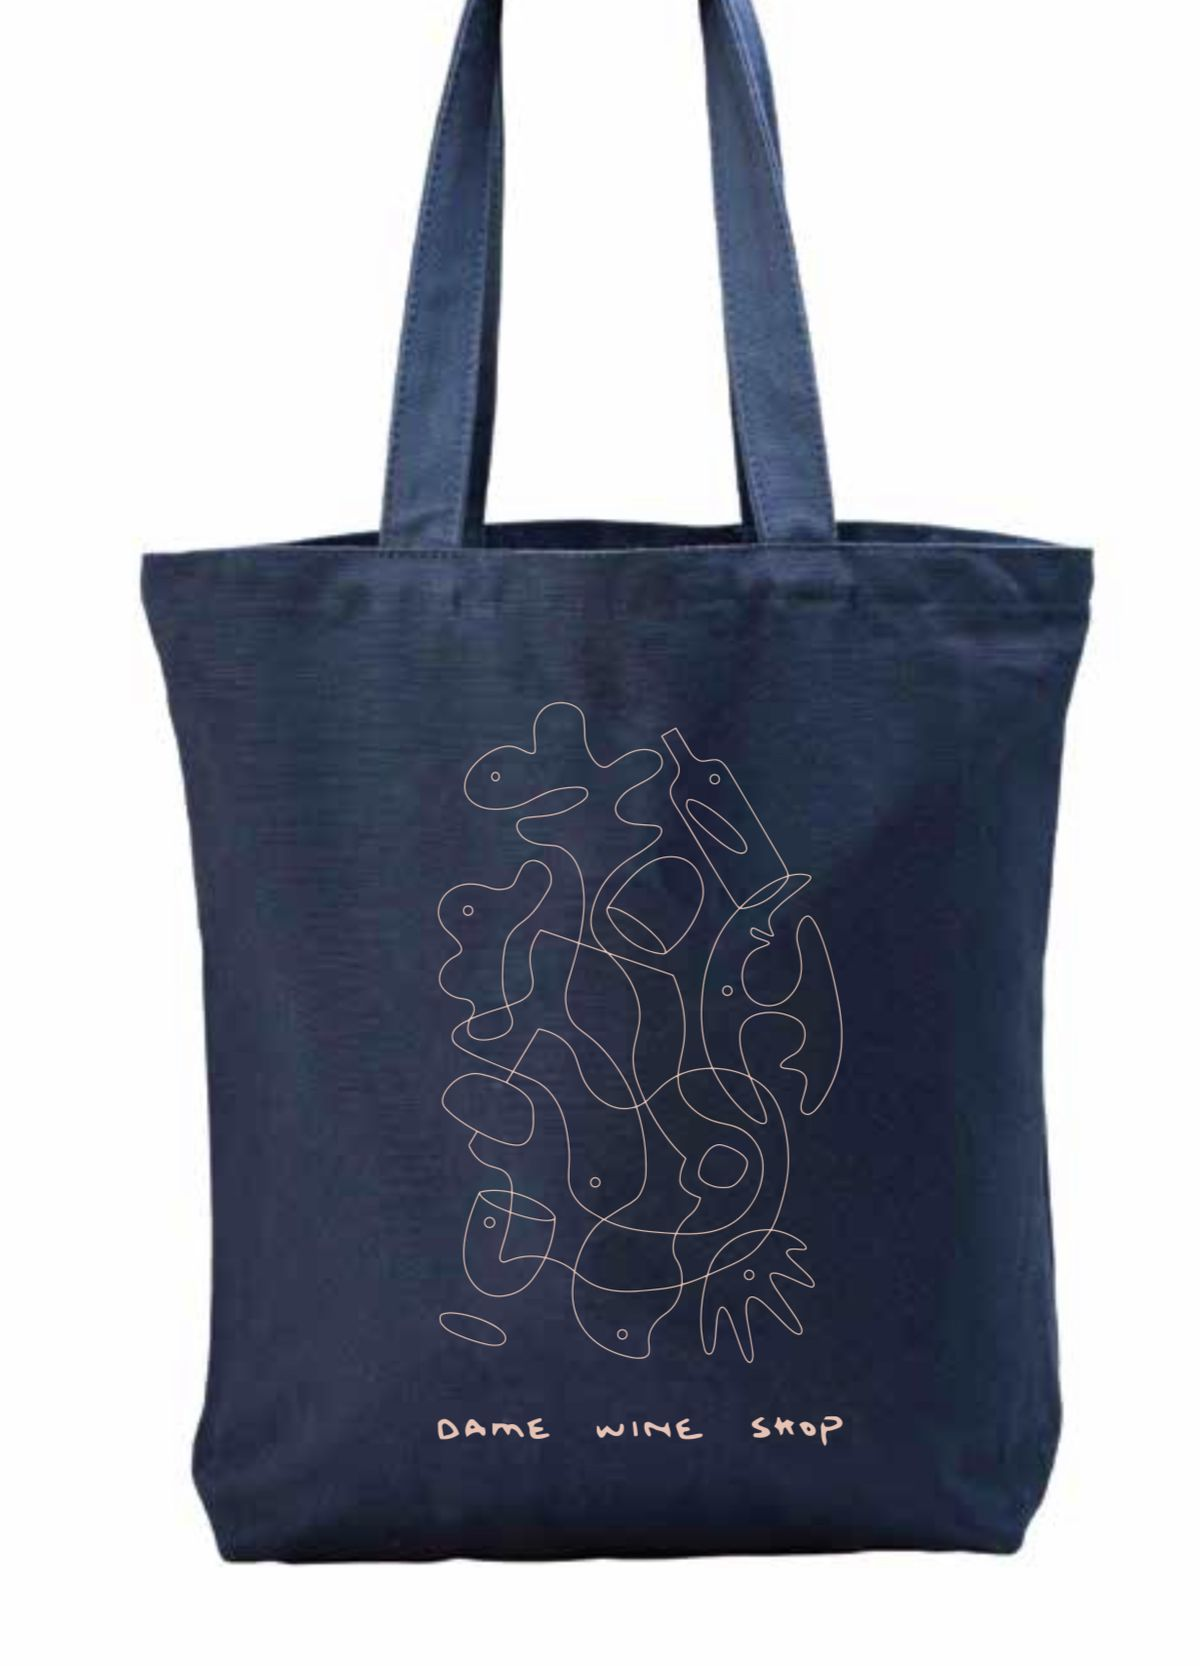 """A squiggly, abstract design appears on a navy blue tote bag with the words """"Dame Wine Shop"""" at the bottom"""